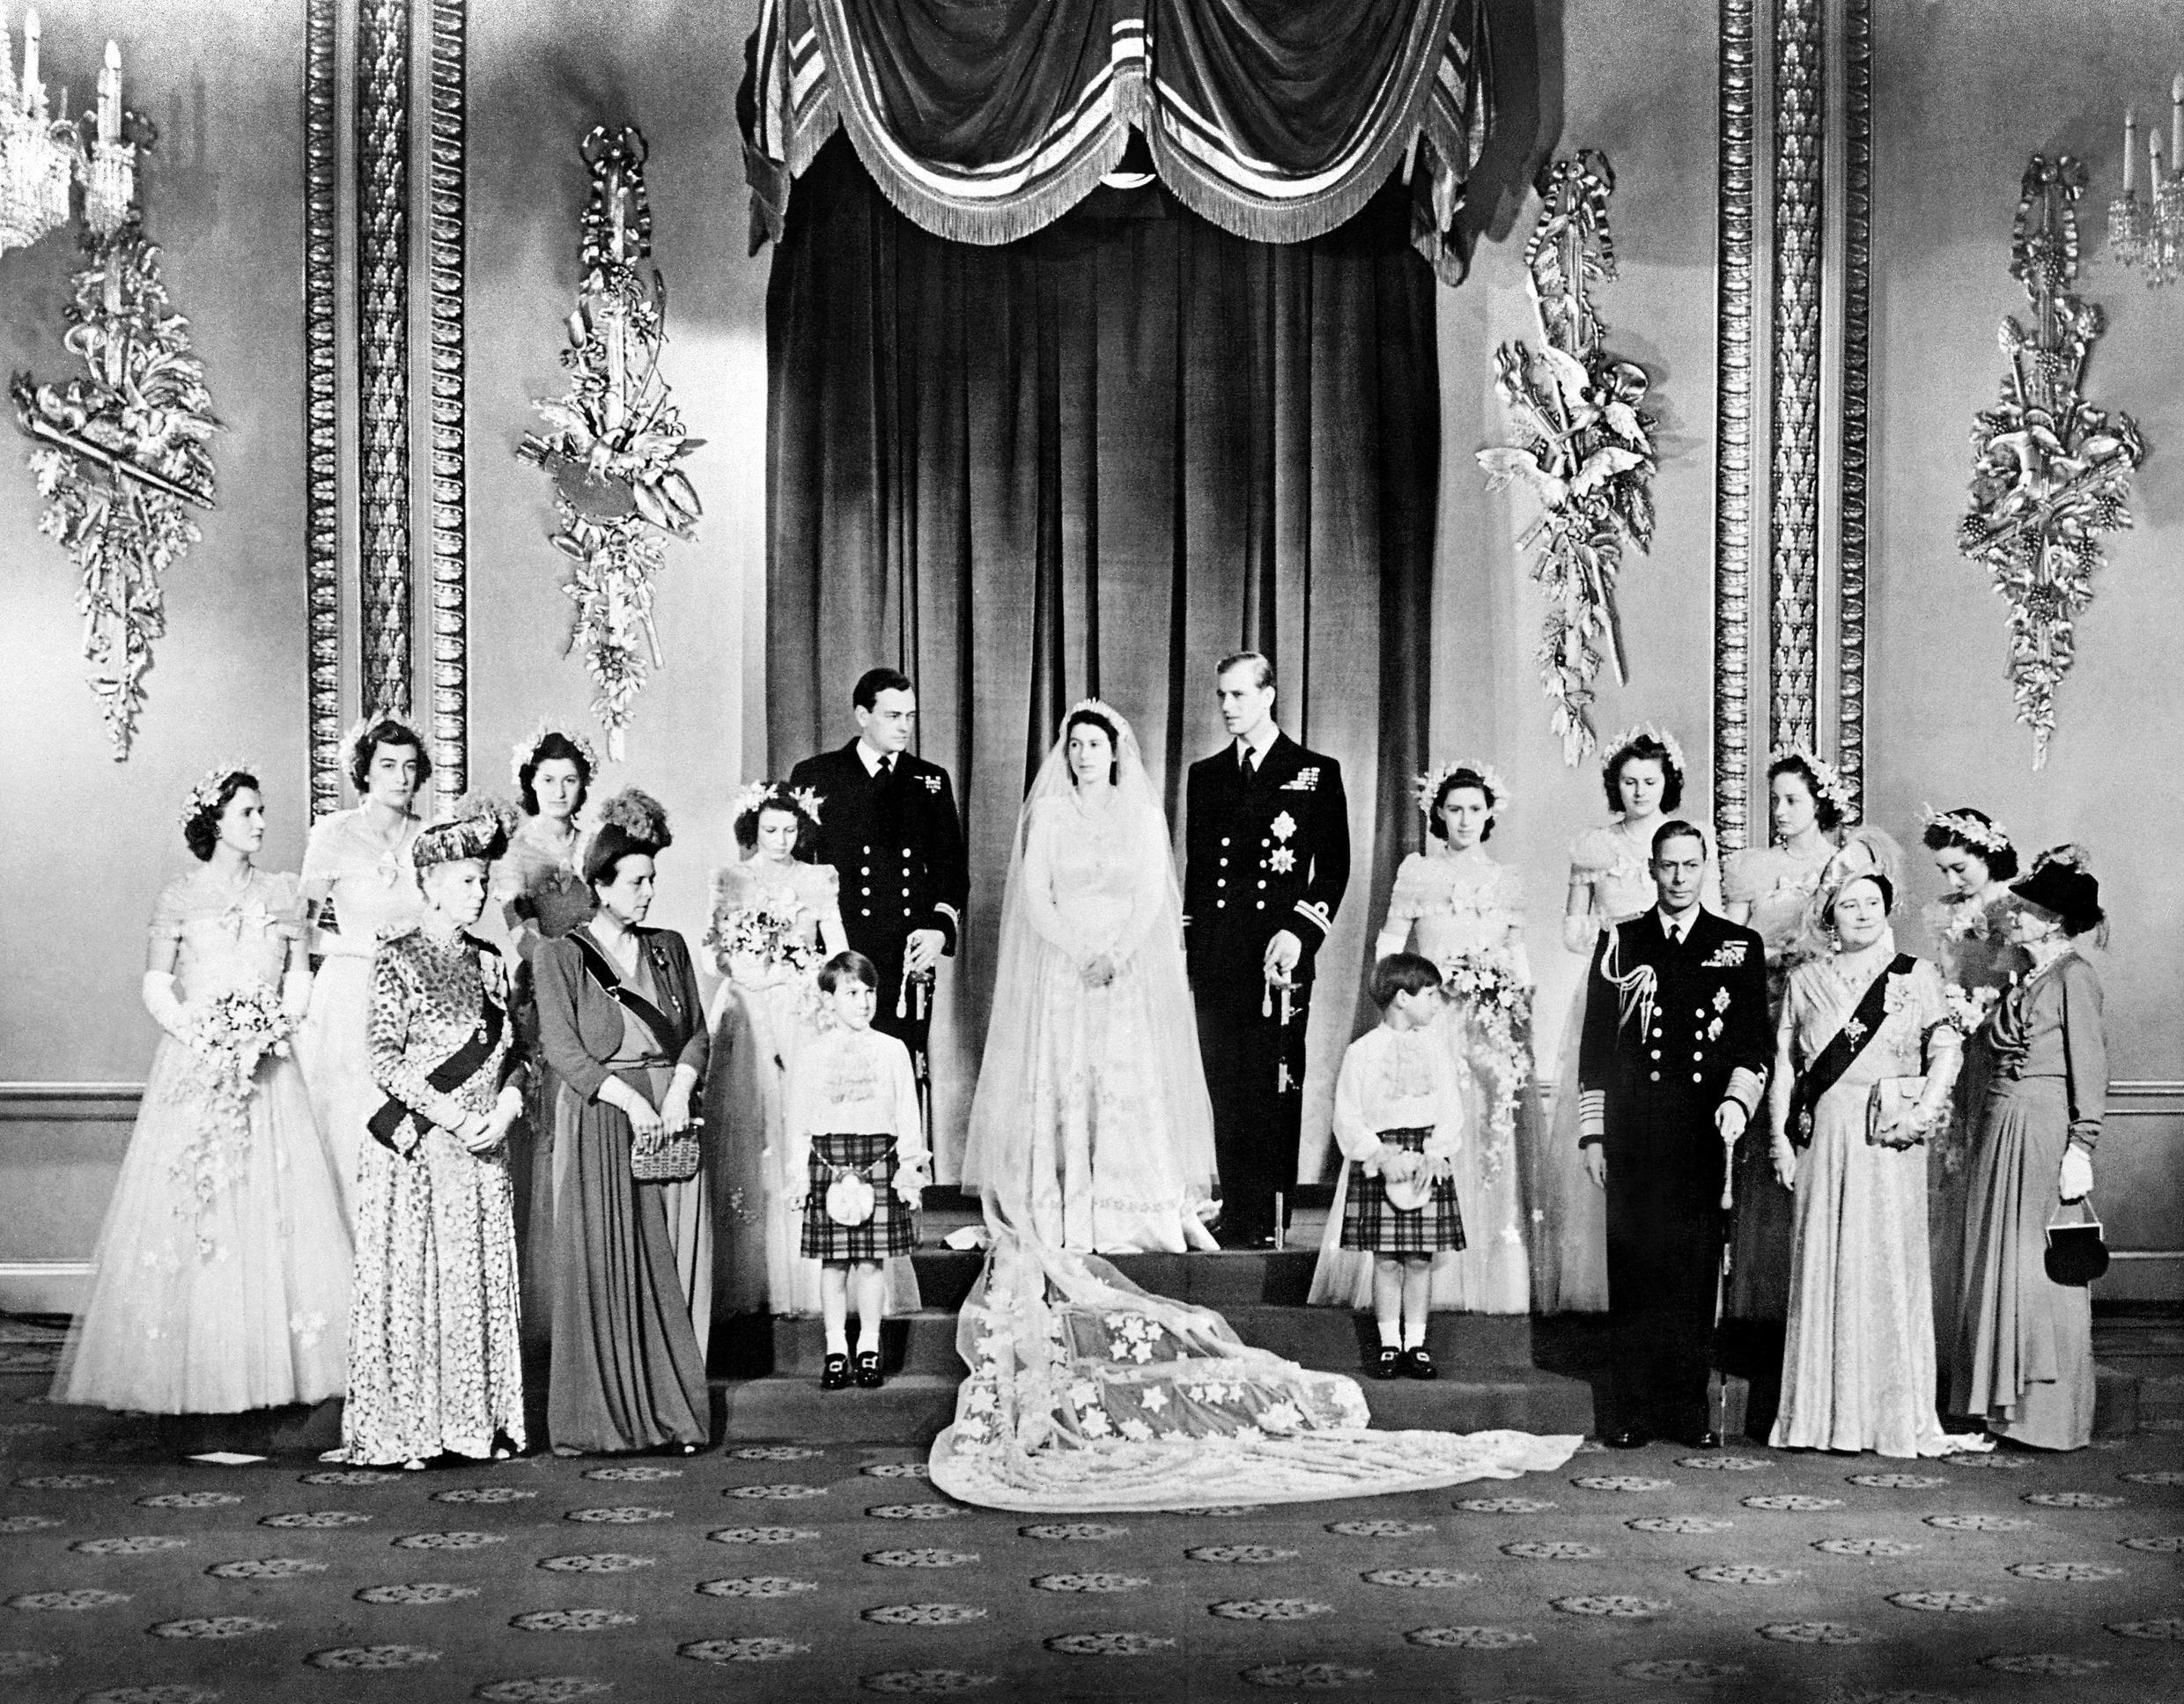 Members of the Royal Family pose around then Princess Elizabeth and Philip, Duke of Edinburgh in the Throne Room at Buckingham Palace on their wedding day, November 20, 1947.